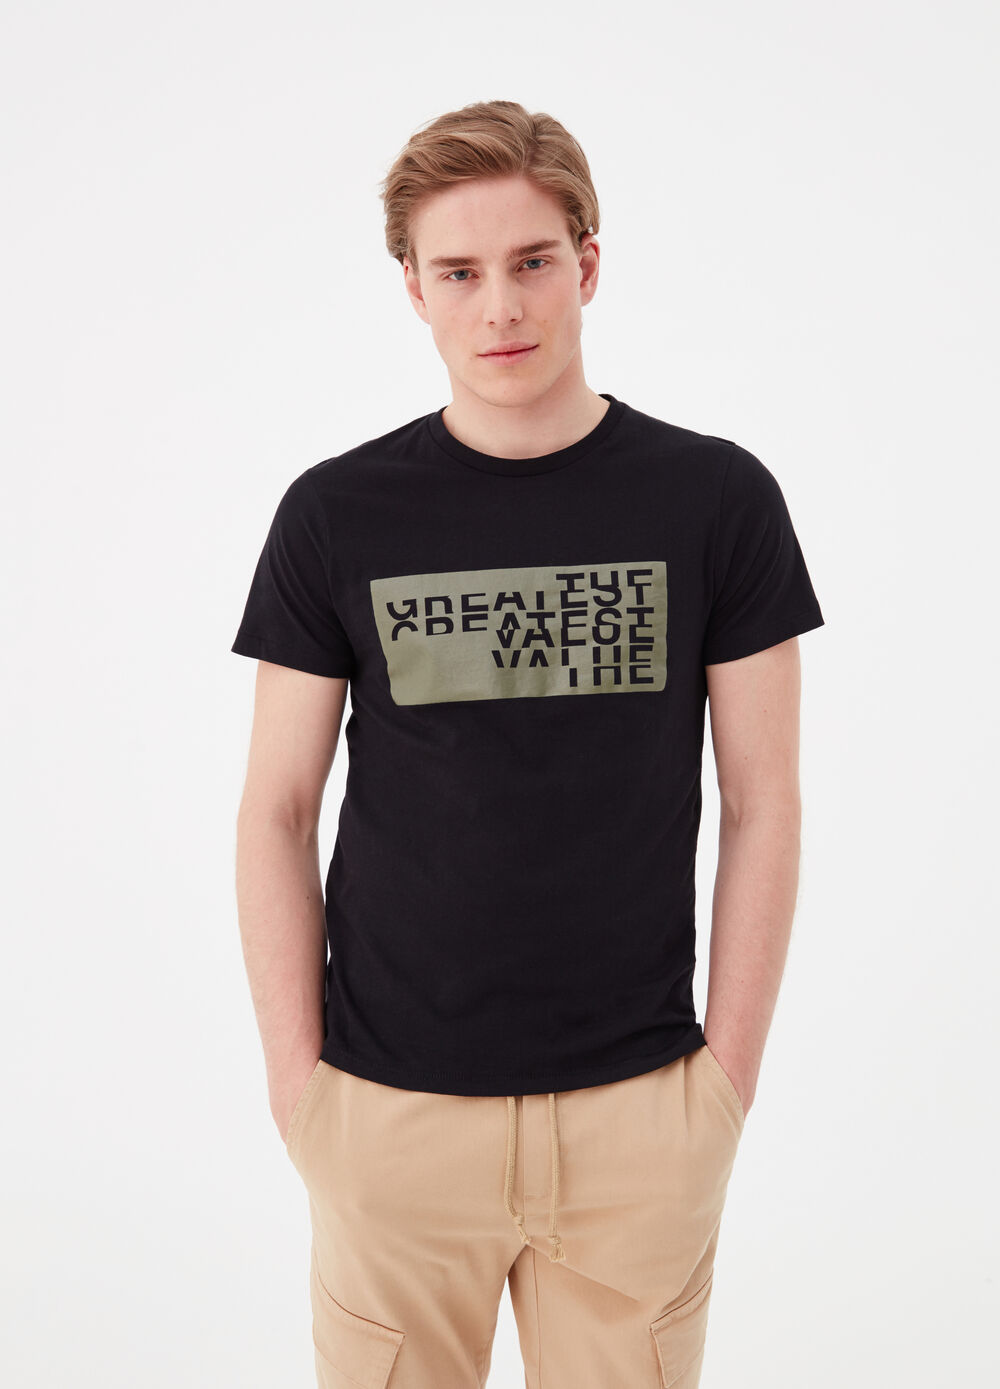 T-shirt with round neck and printed lettering